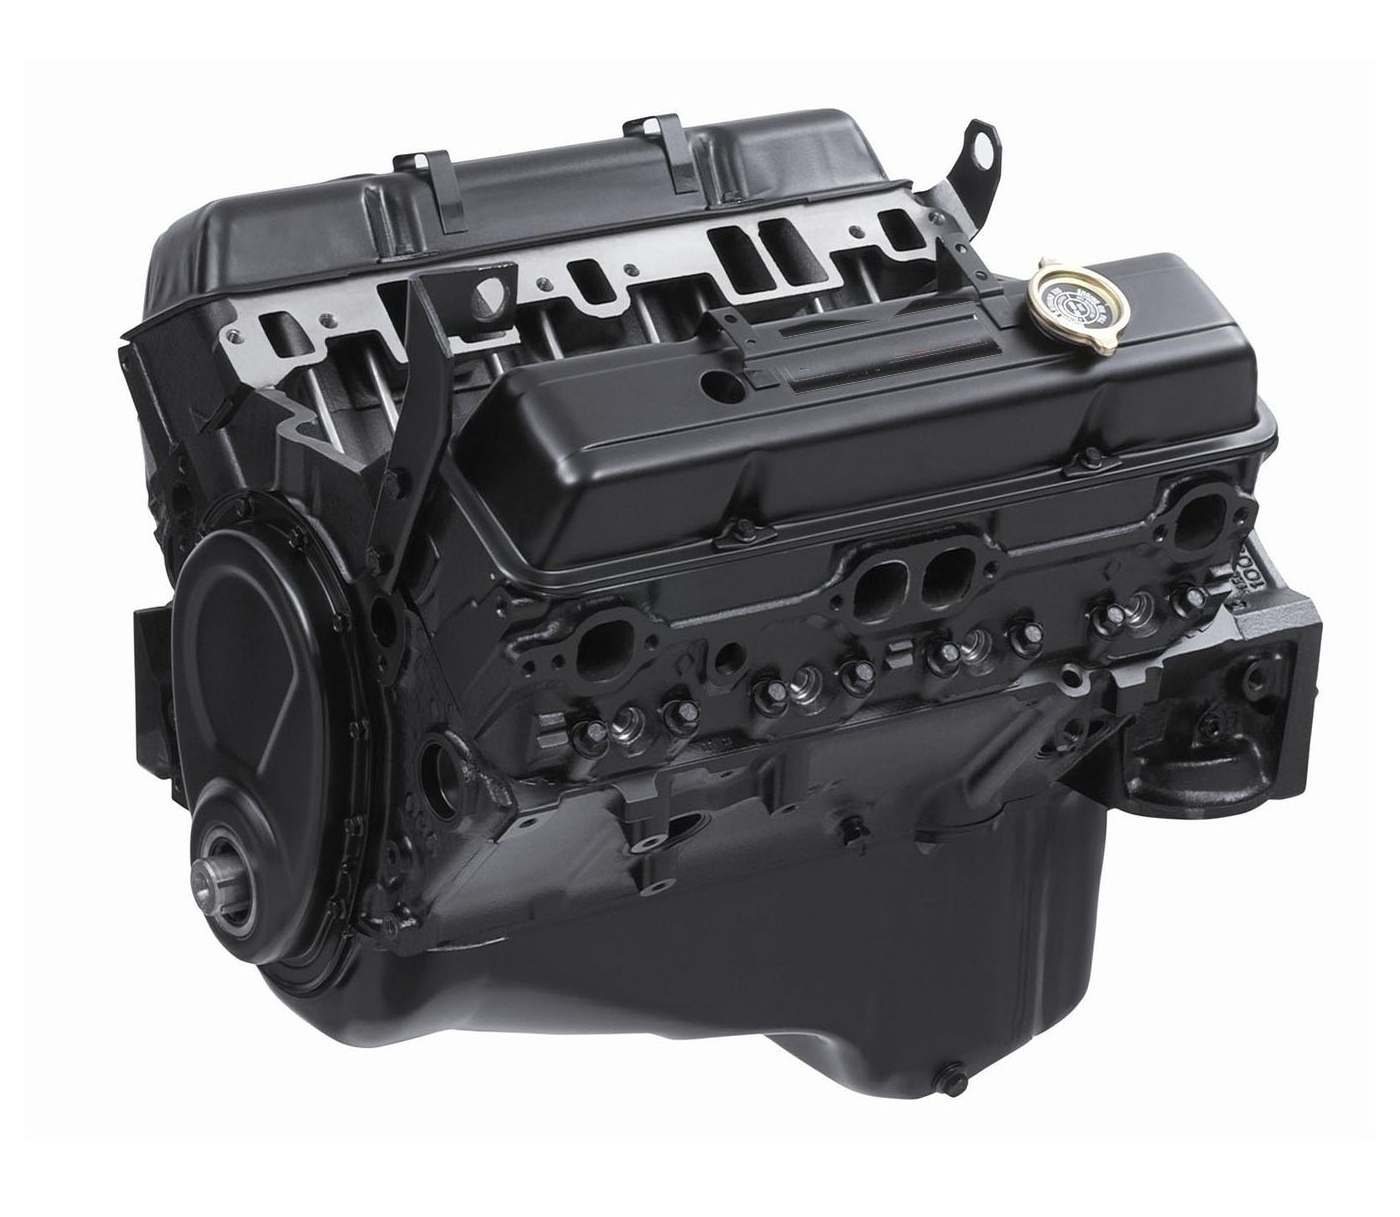 5.7L Reman Long Block Engine For Chevrolet K20 Suburban